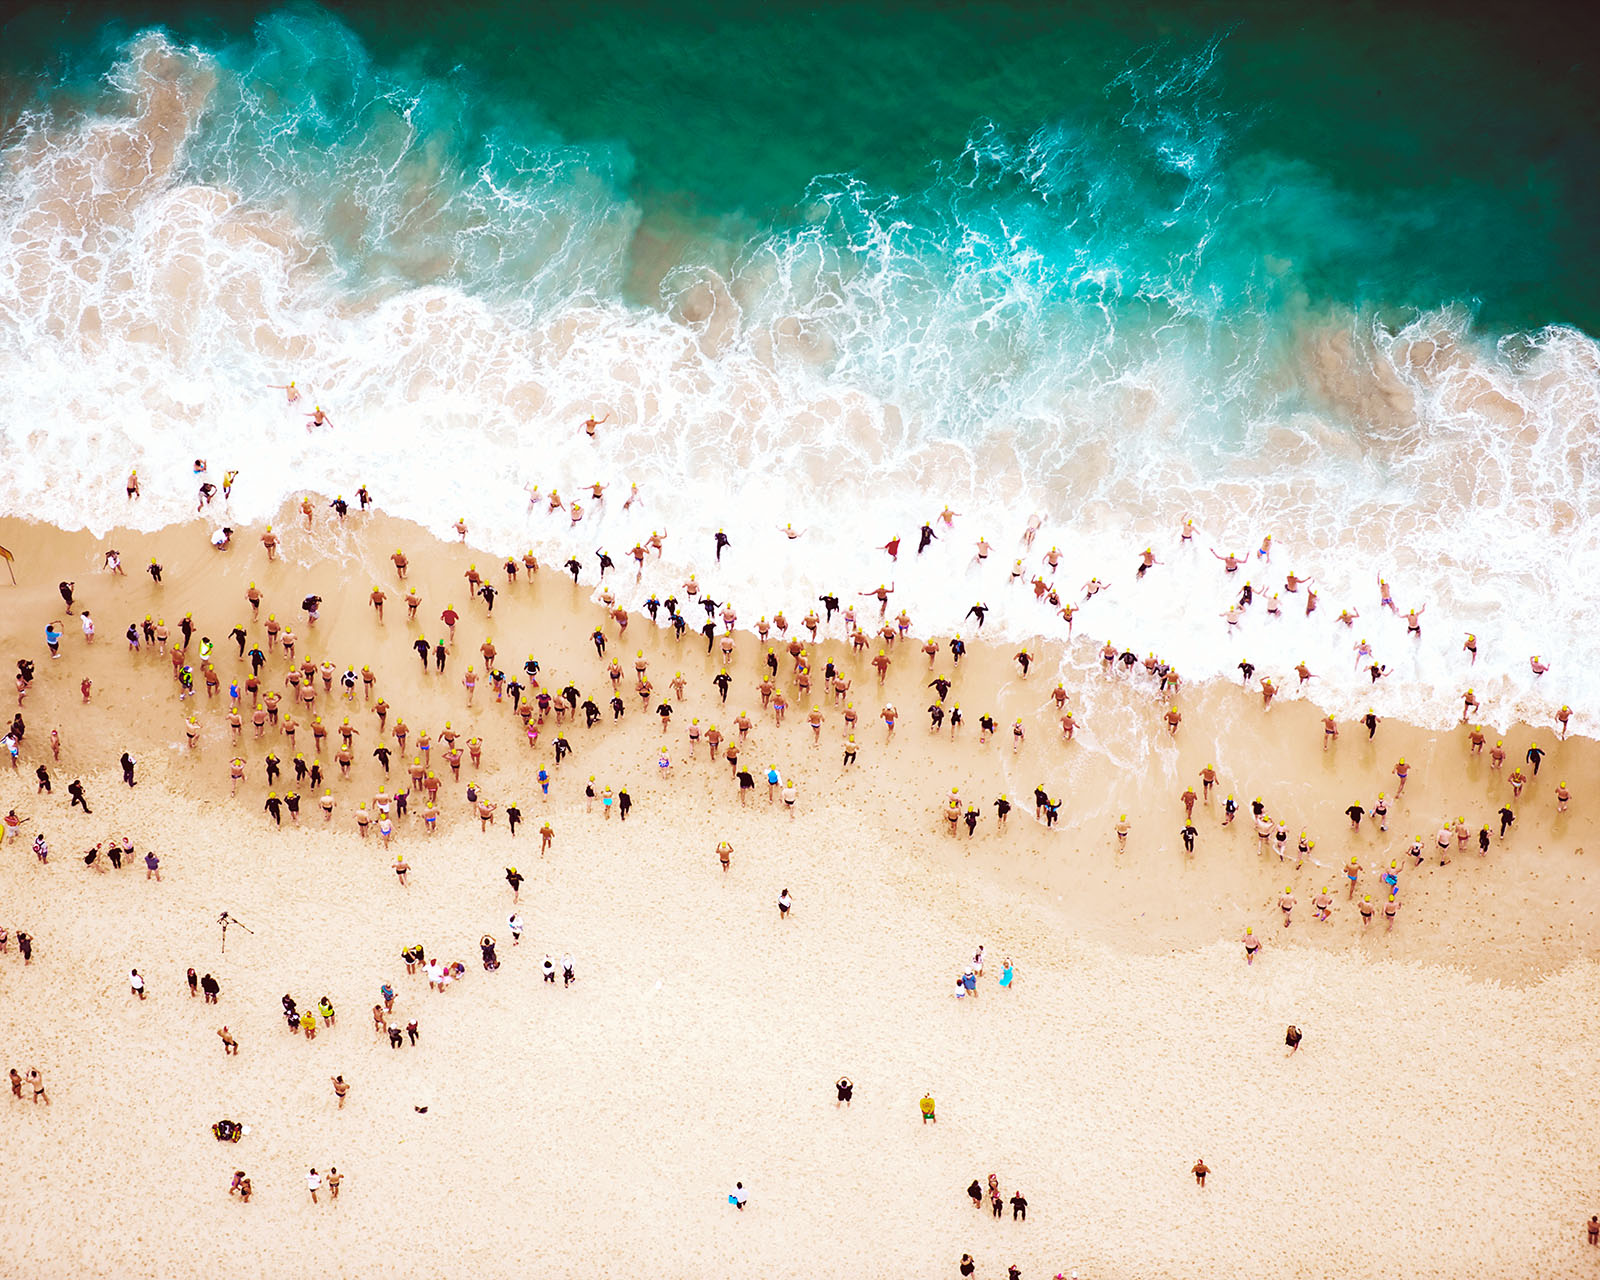 Tommy Clarke Entry beach photography graphic minimal lumas gallery coupon code